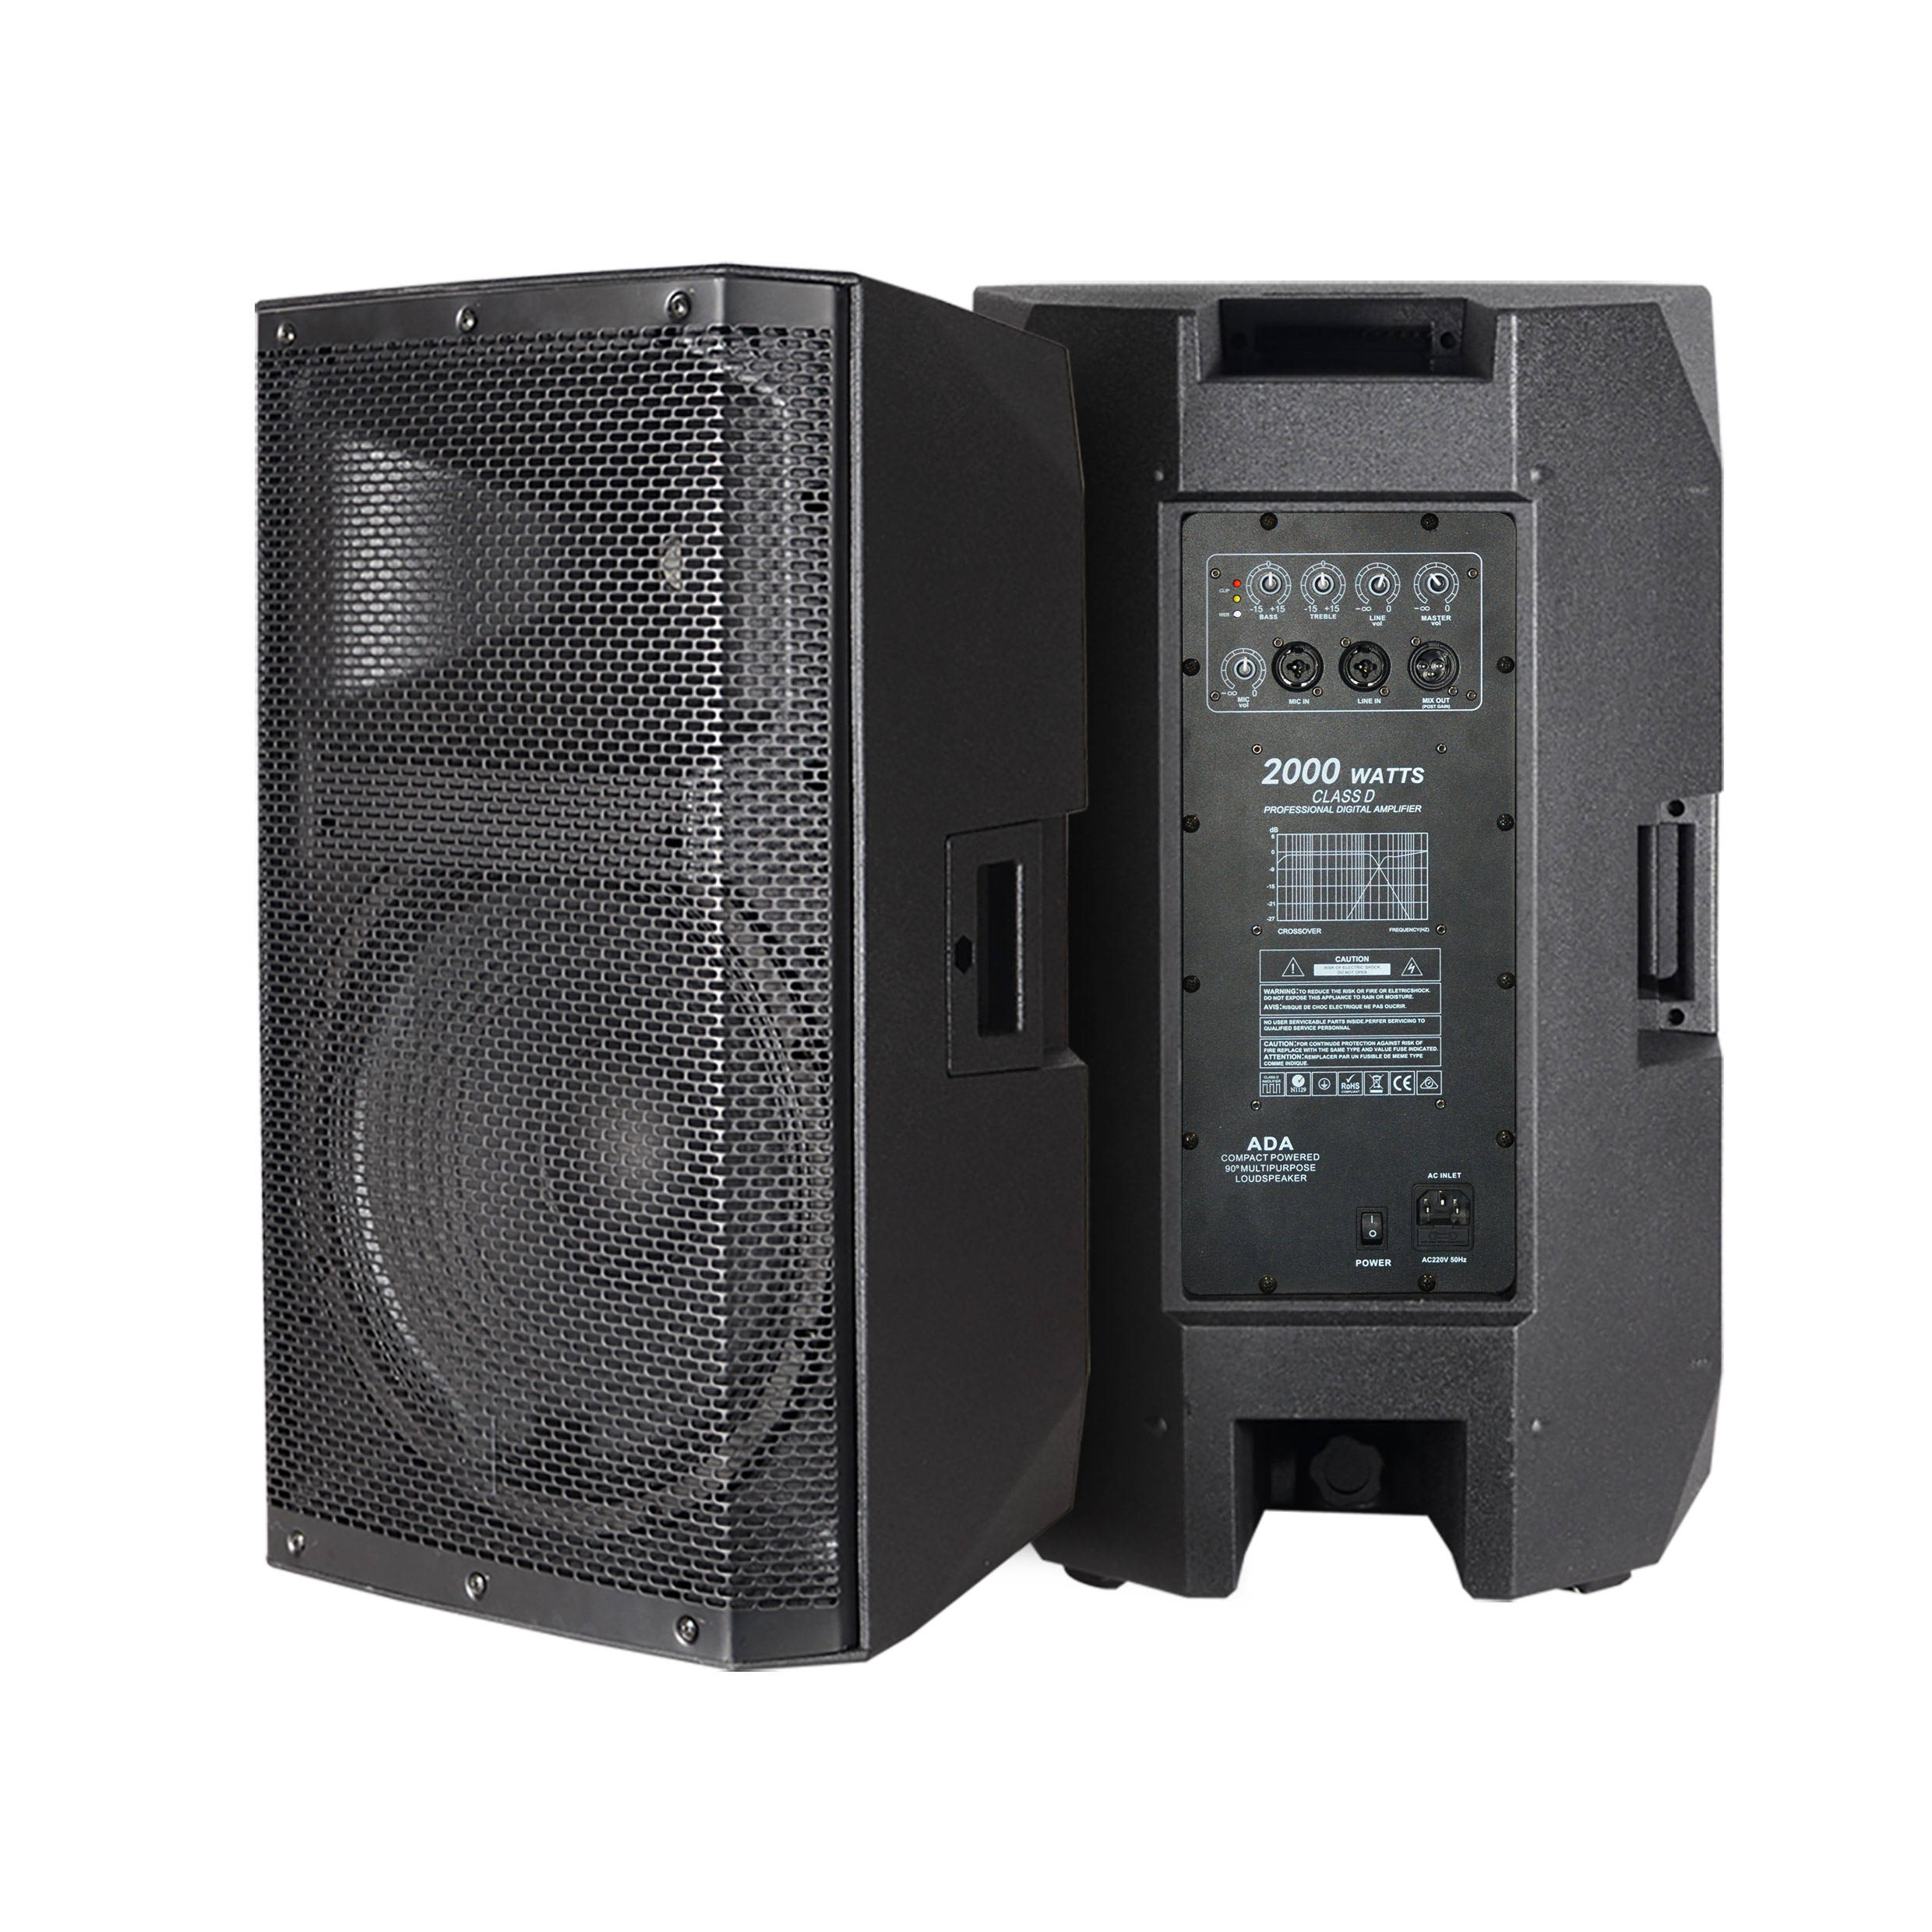 Akurasi Pro Audio CAC15ADA Profesional 500W 15 Inch Aktif Digital Power Amplifier DJ Kotak Speaker Sistem